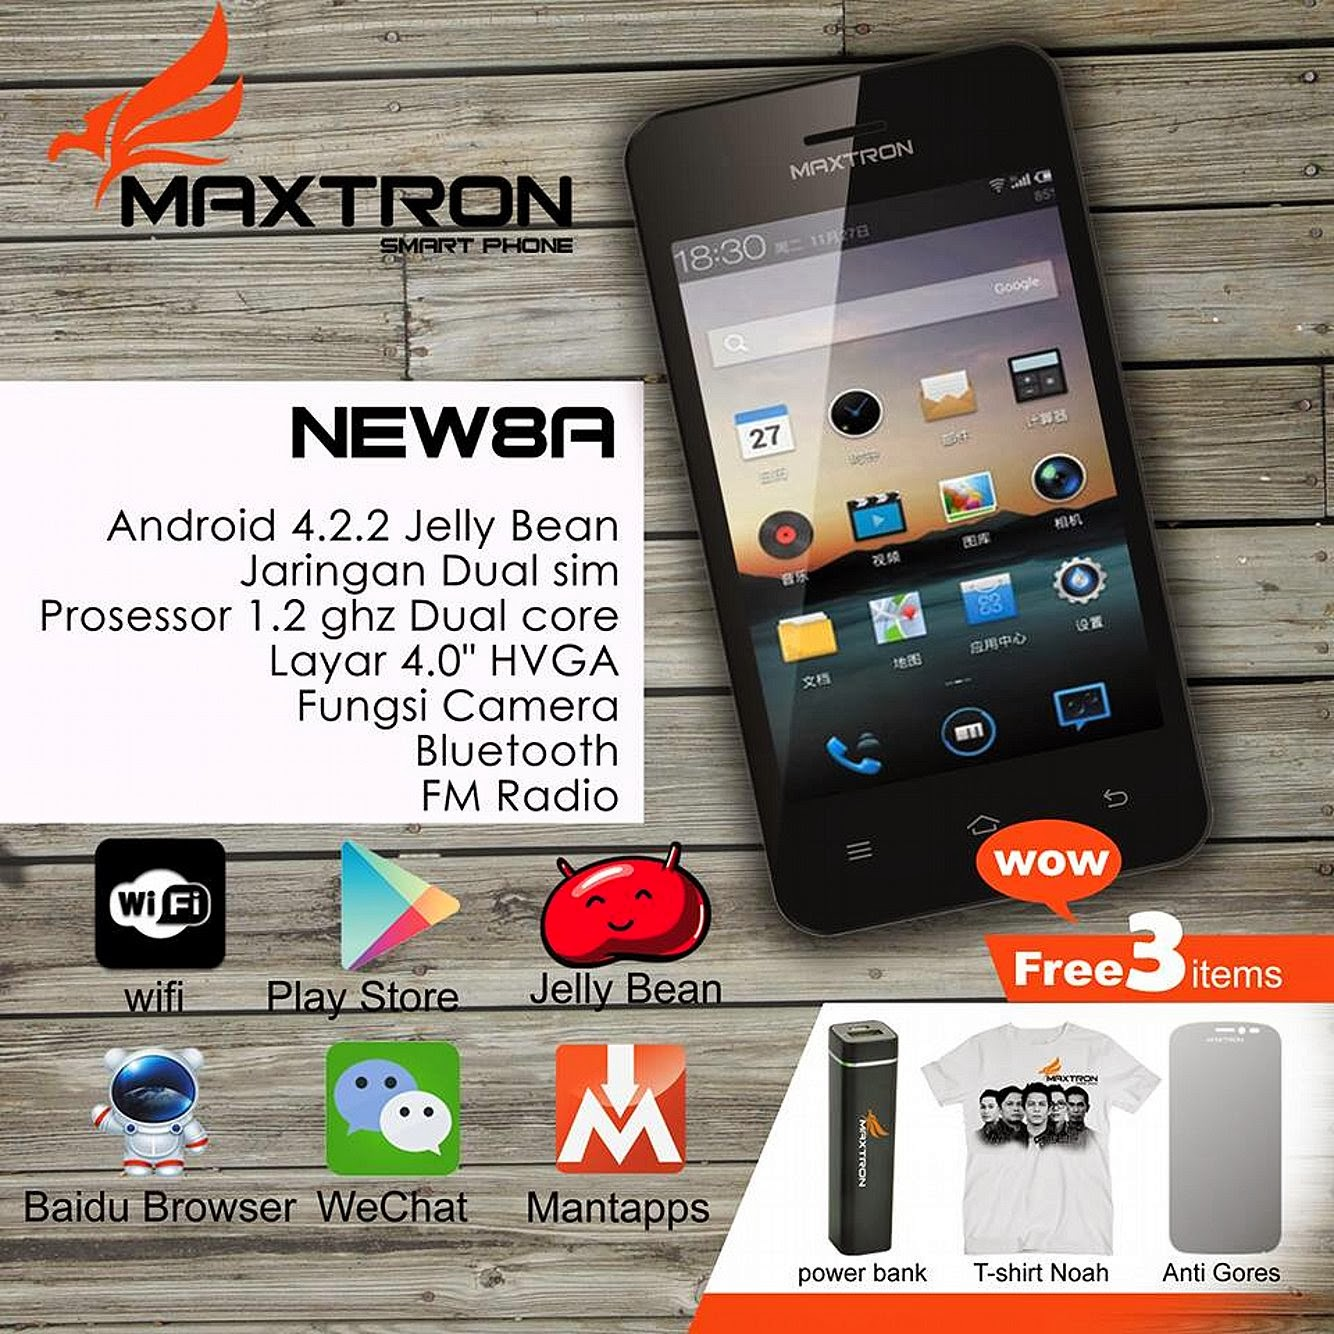 Tempat Jual Maxtron C15 12000 Mah Brown Army Referensi Update 2018 New7a Smartphone New 8a Android Jelly Bean Dual Core Ponsel